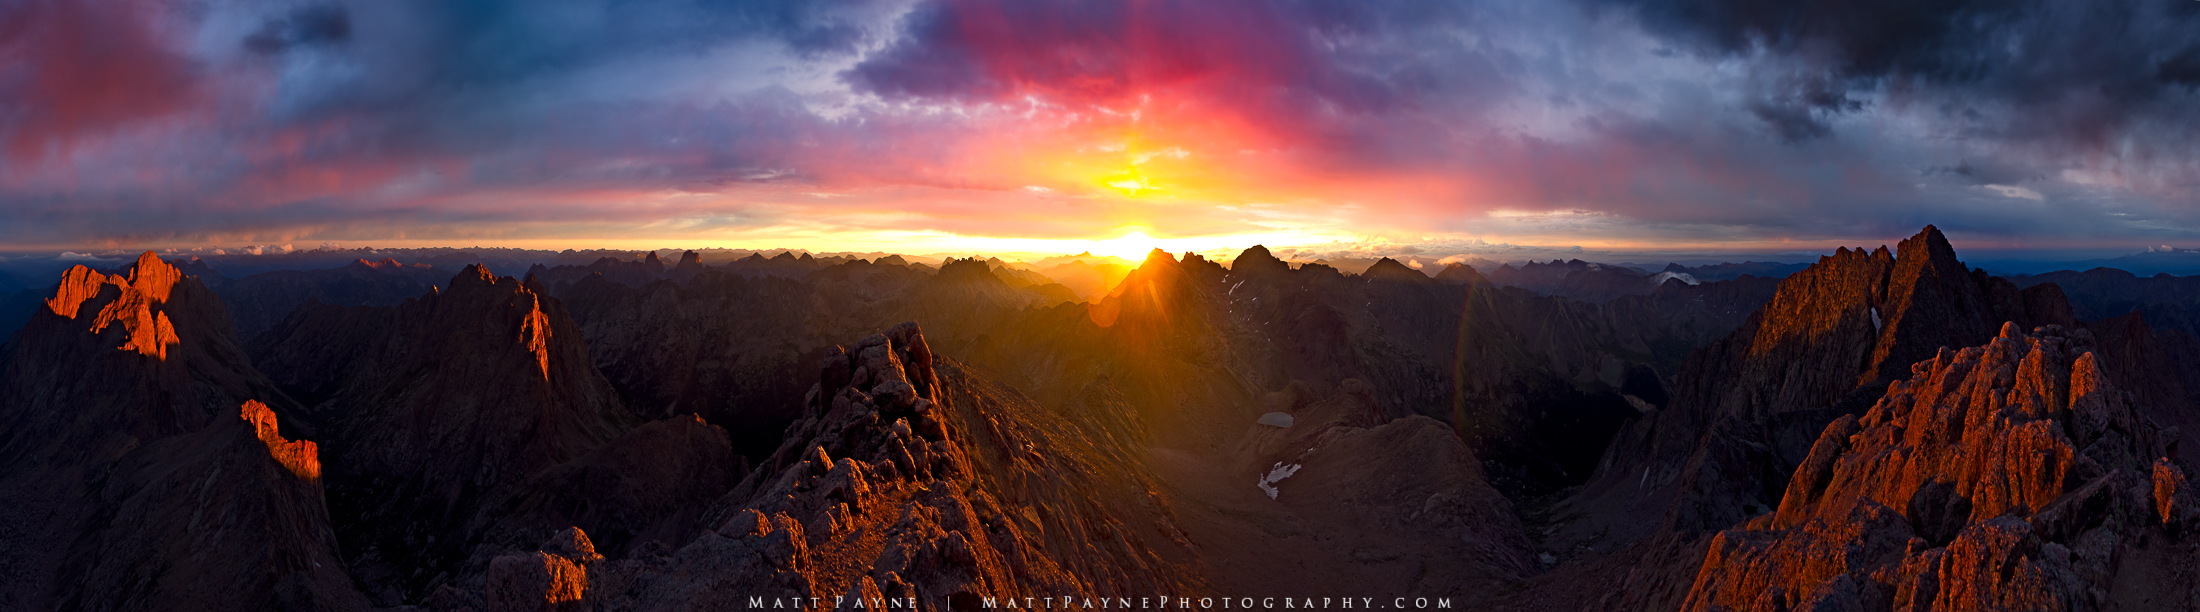 14er, 14ers, Vestal Peak, Arrow Peak, Chicago Basin, Climbing, Colorado, Durango, Eolus Peak, Epic, Grenadier Range, Landscape, Mountains, Needle Range, sunrise, Windom Peak, Sunlight Peak, Wetterhorn, photo